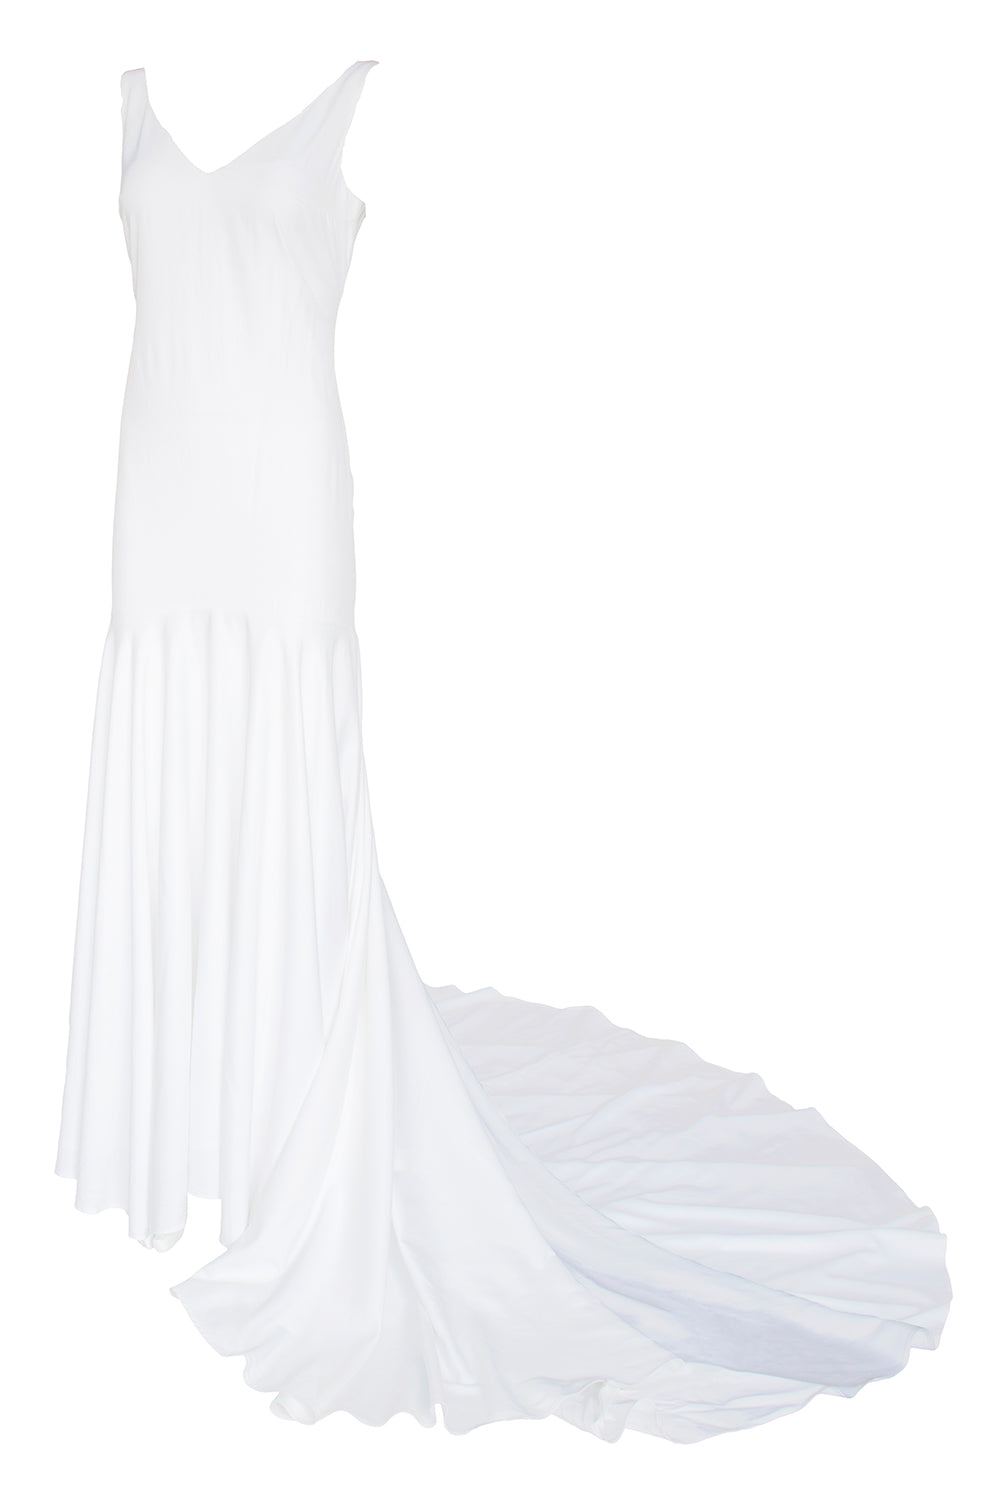 The Blake Wedding Dress